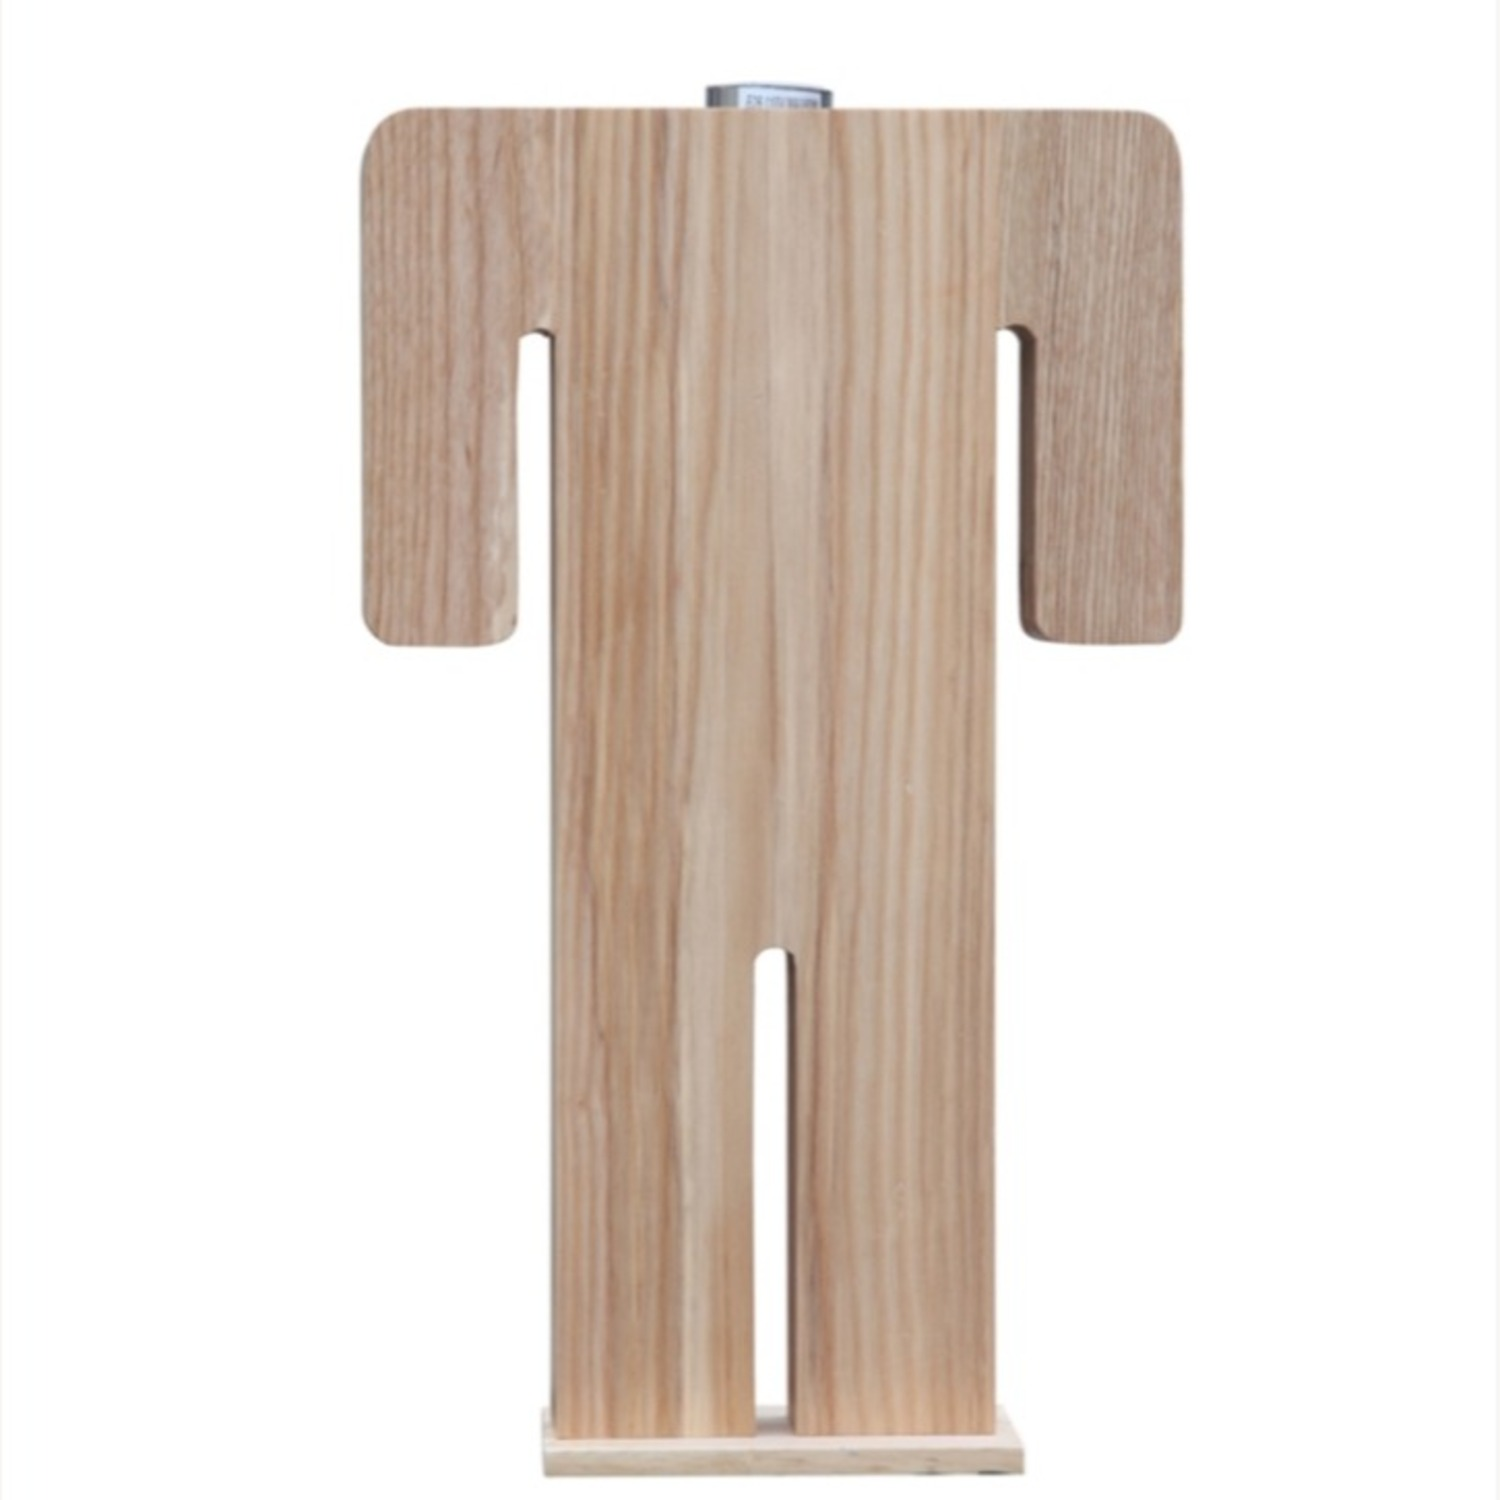 Table Lamp In Natural Wood W/ Male Person Design - image-3